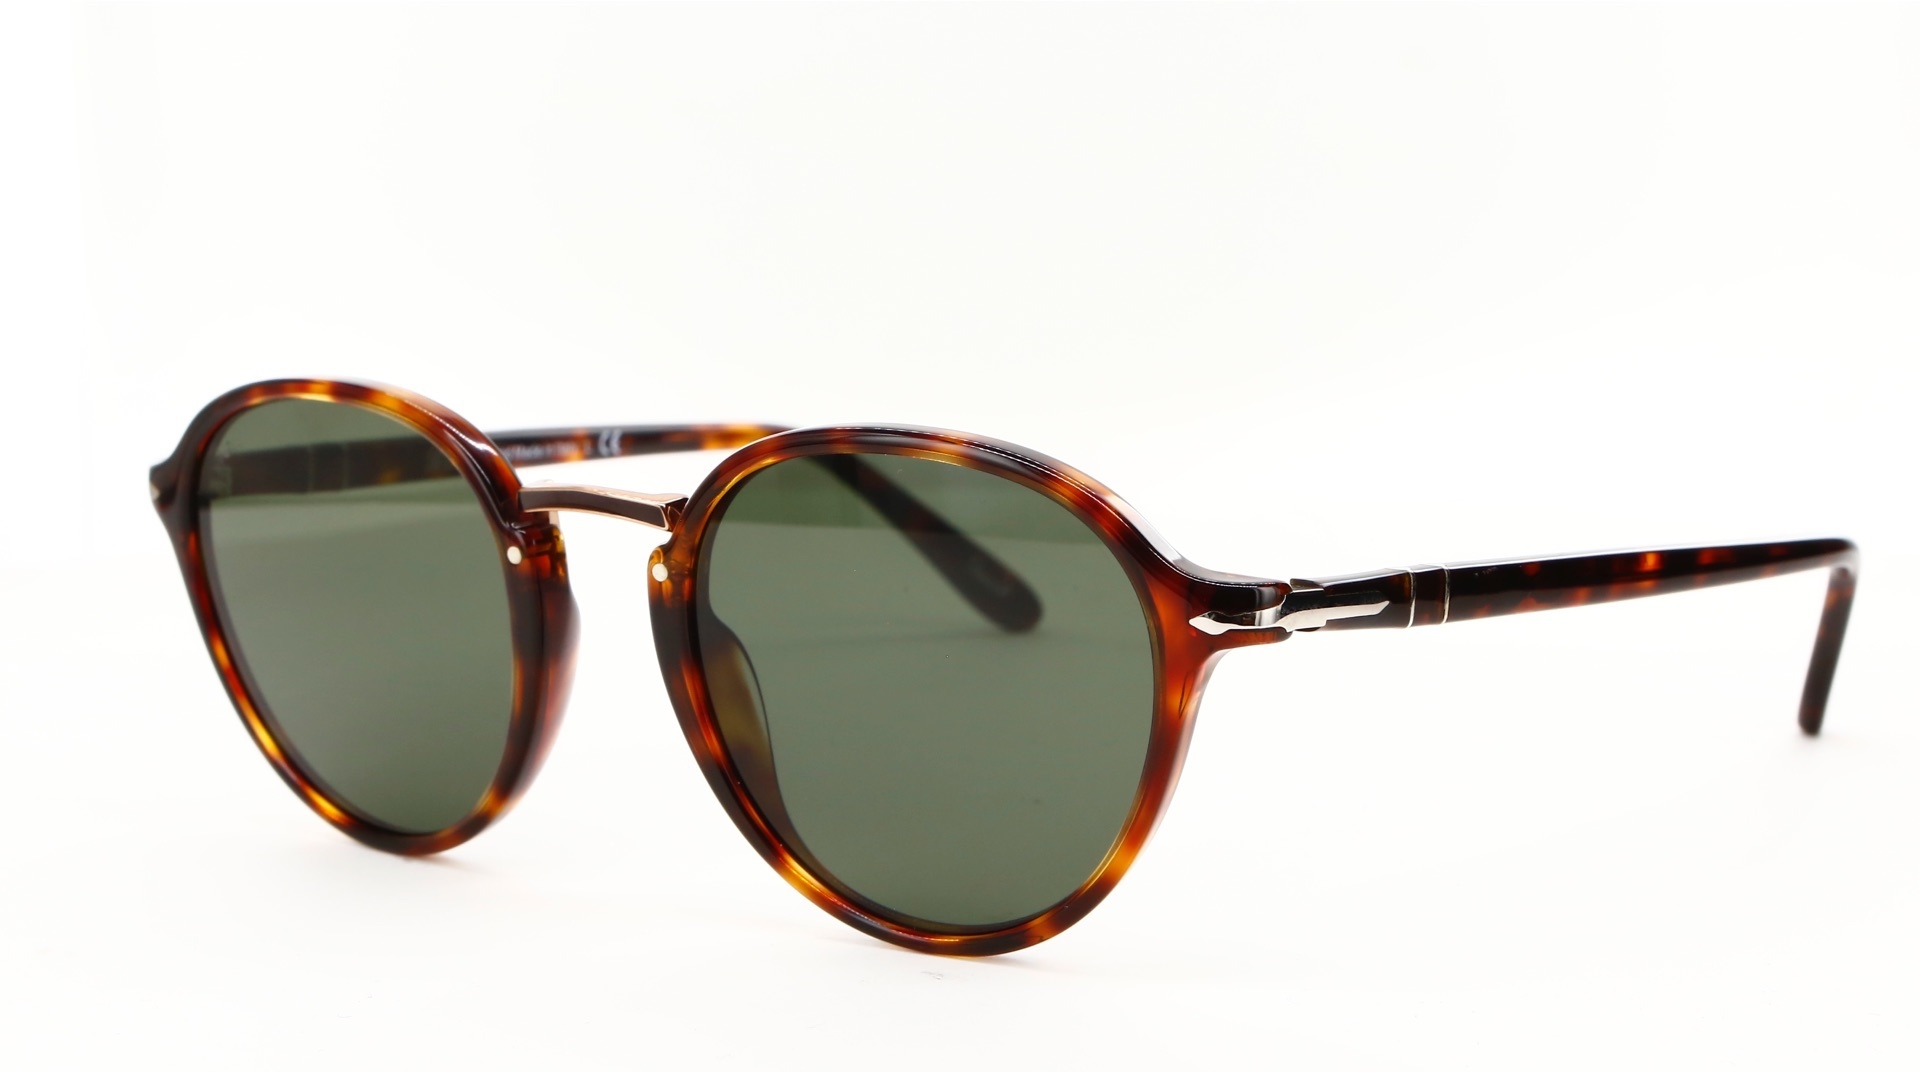 Persol - ref: 79280